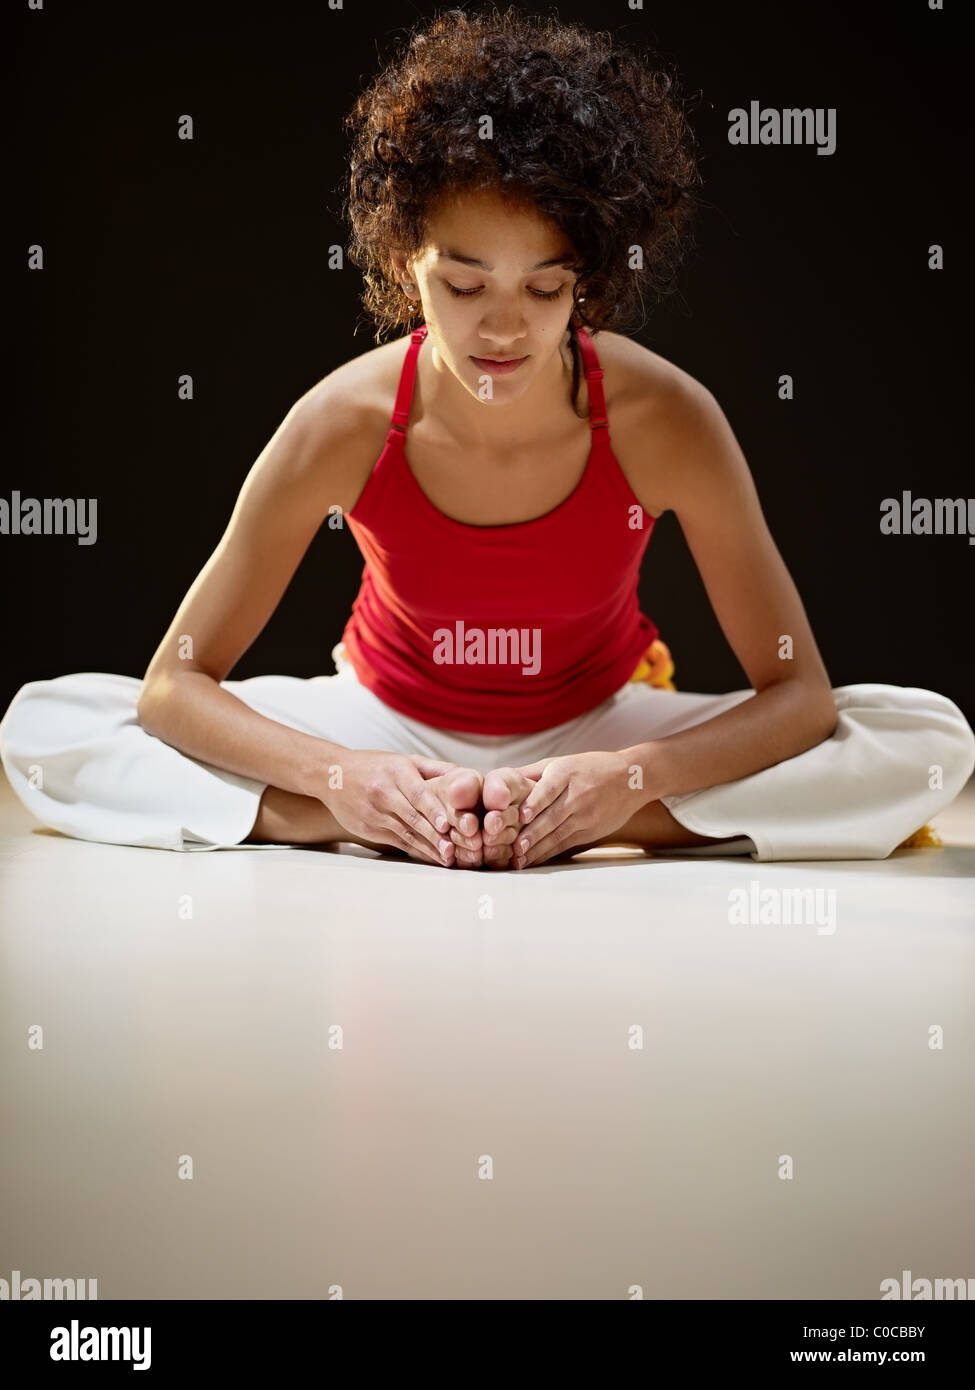 portrait of young adult latin american female sitting on white floor doing yoga exercise. - Stock Image